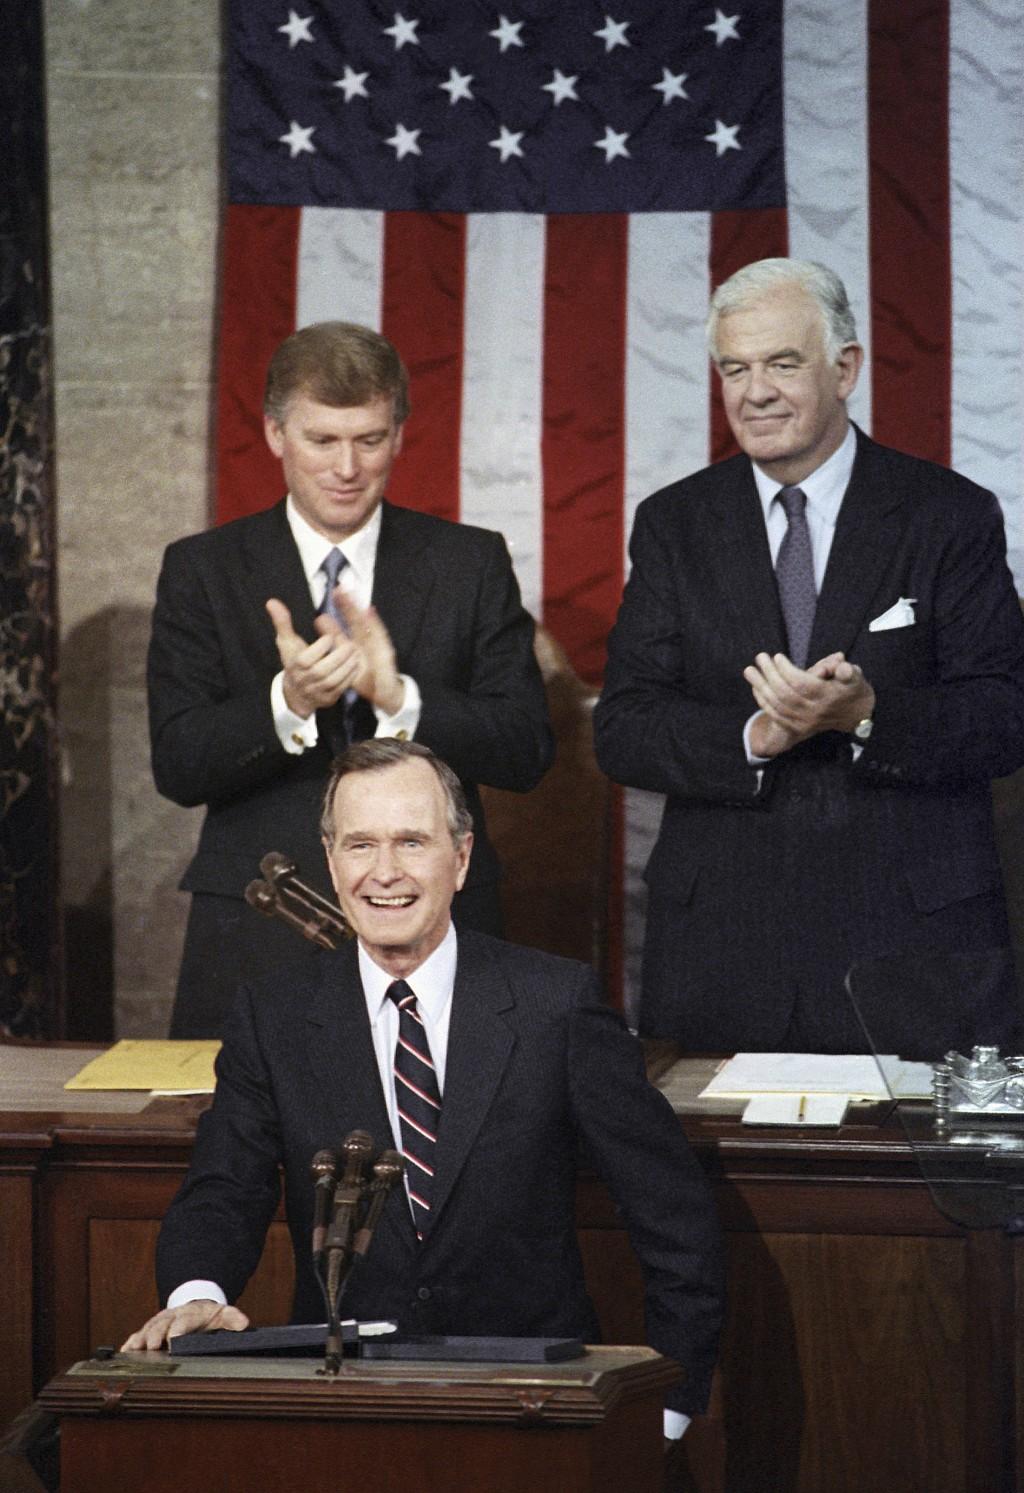 FILE - In this Jan. 31, 1990, file photo, President George H.W. Bush receives applause from Vice President Dan Quayle, left, and House Speaker Thomas